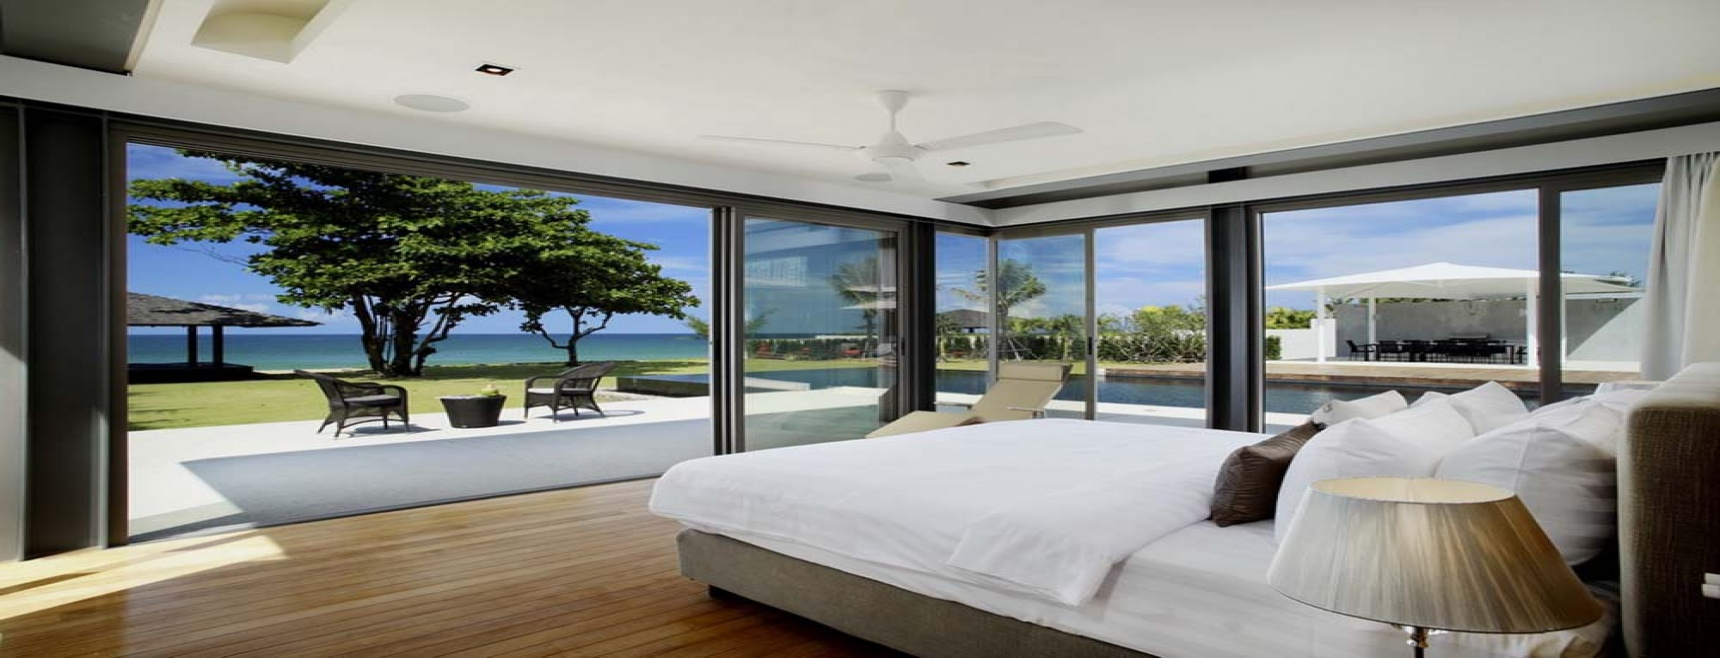 Stunning contemporary private beachside residence